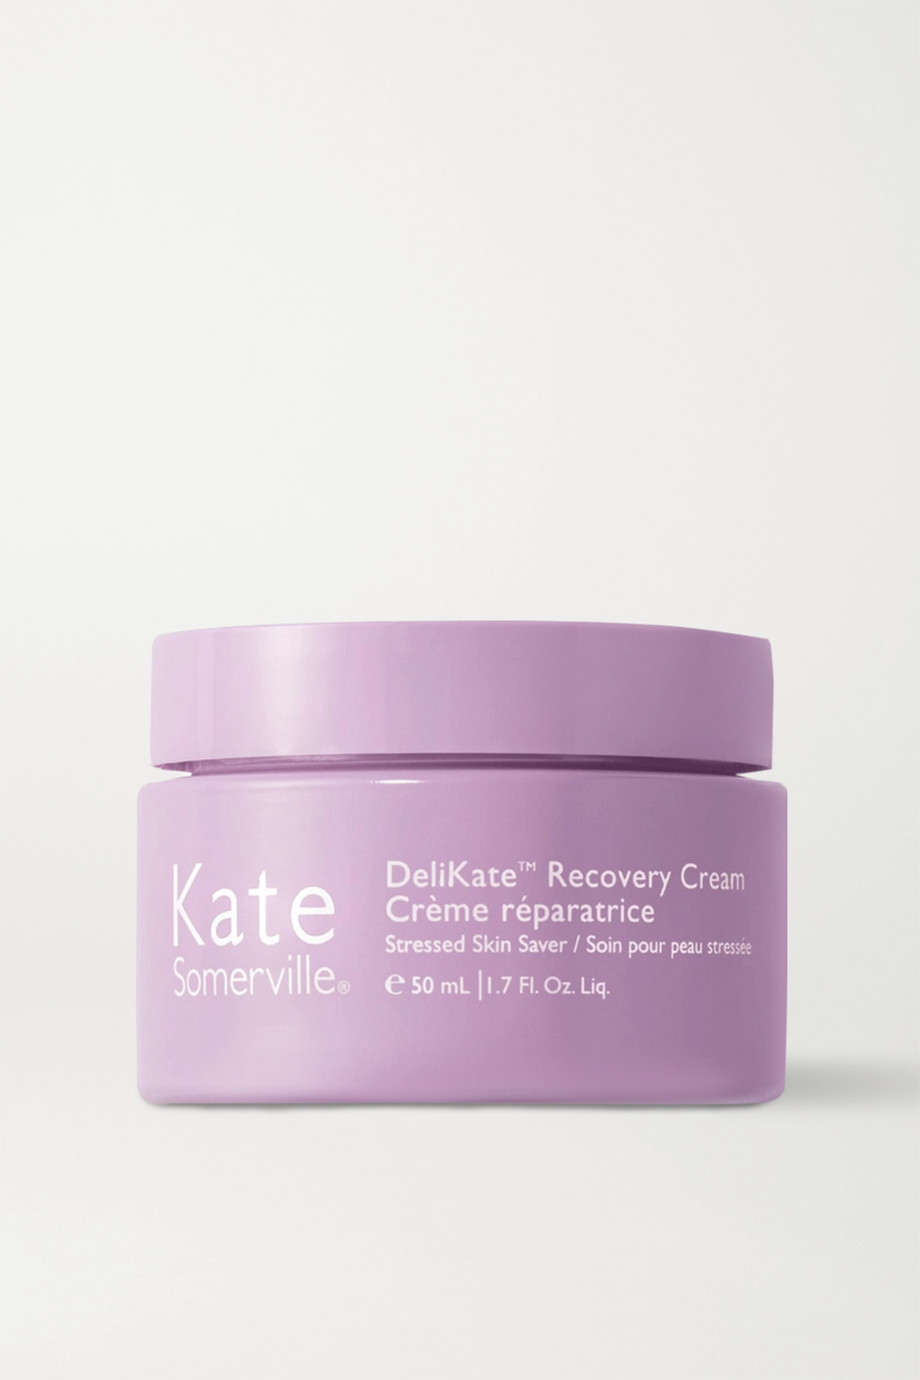 Kate Somerville DeliKate Recovery Cream, 50ml